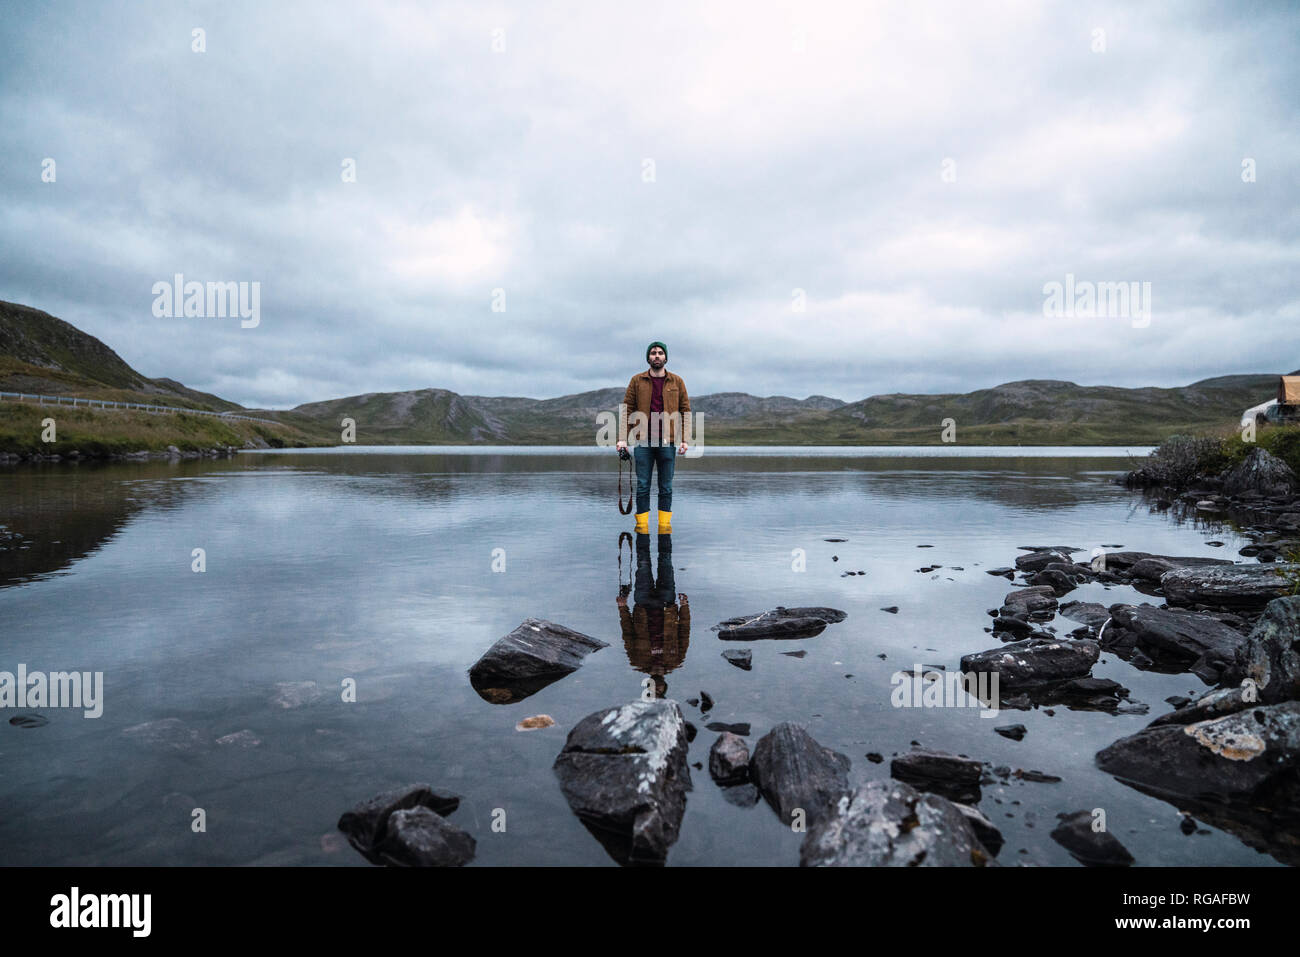 Young man standing ankle deep in water, holding camera - Stock Image